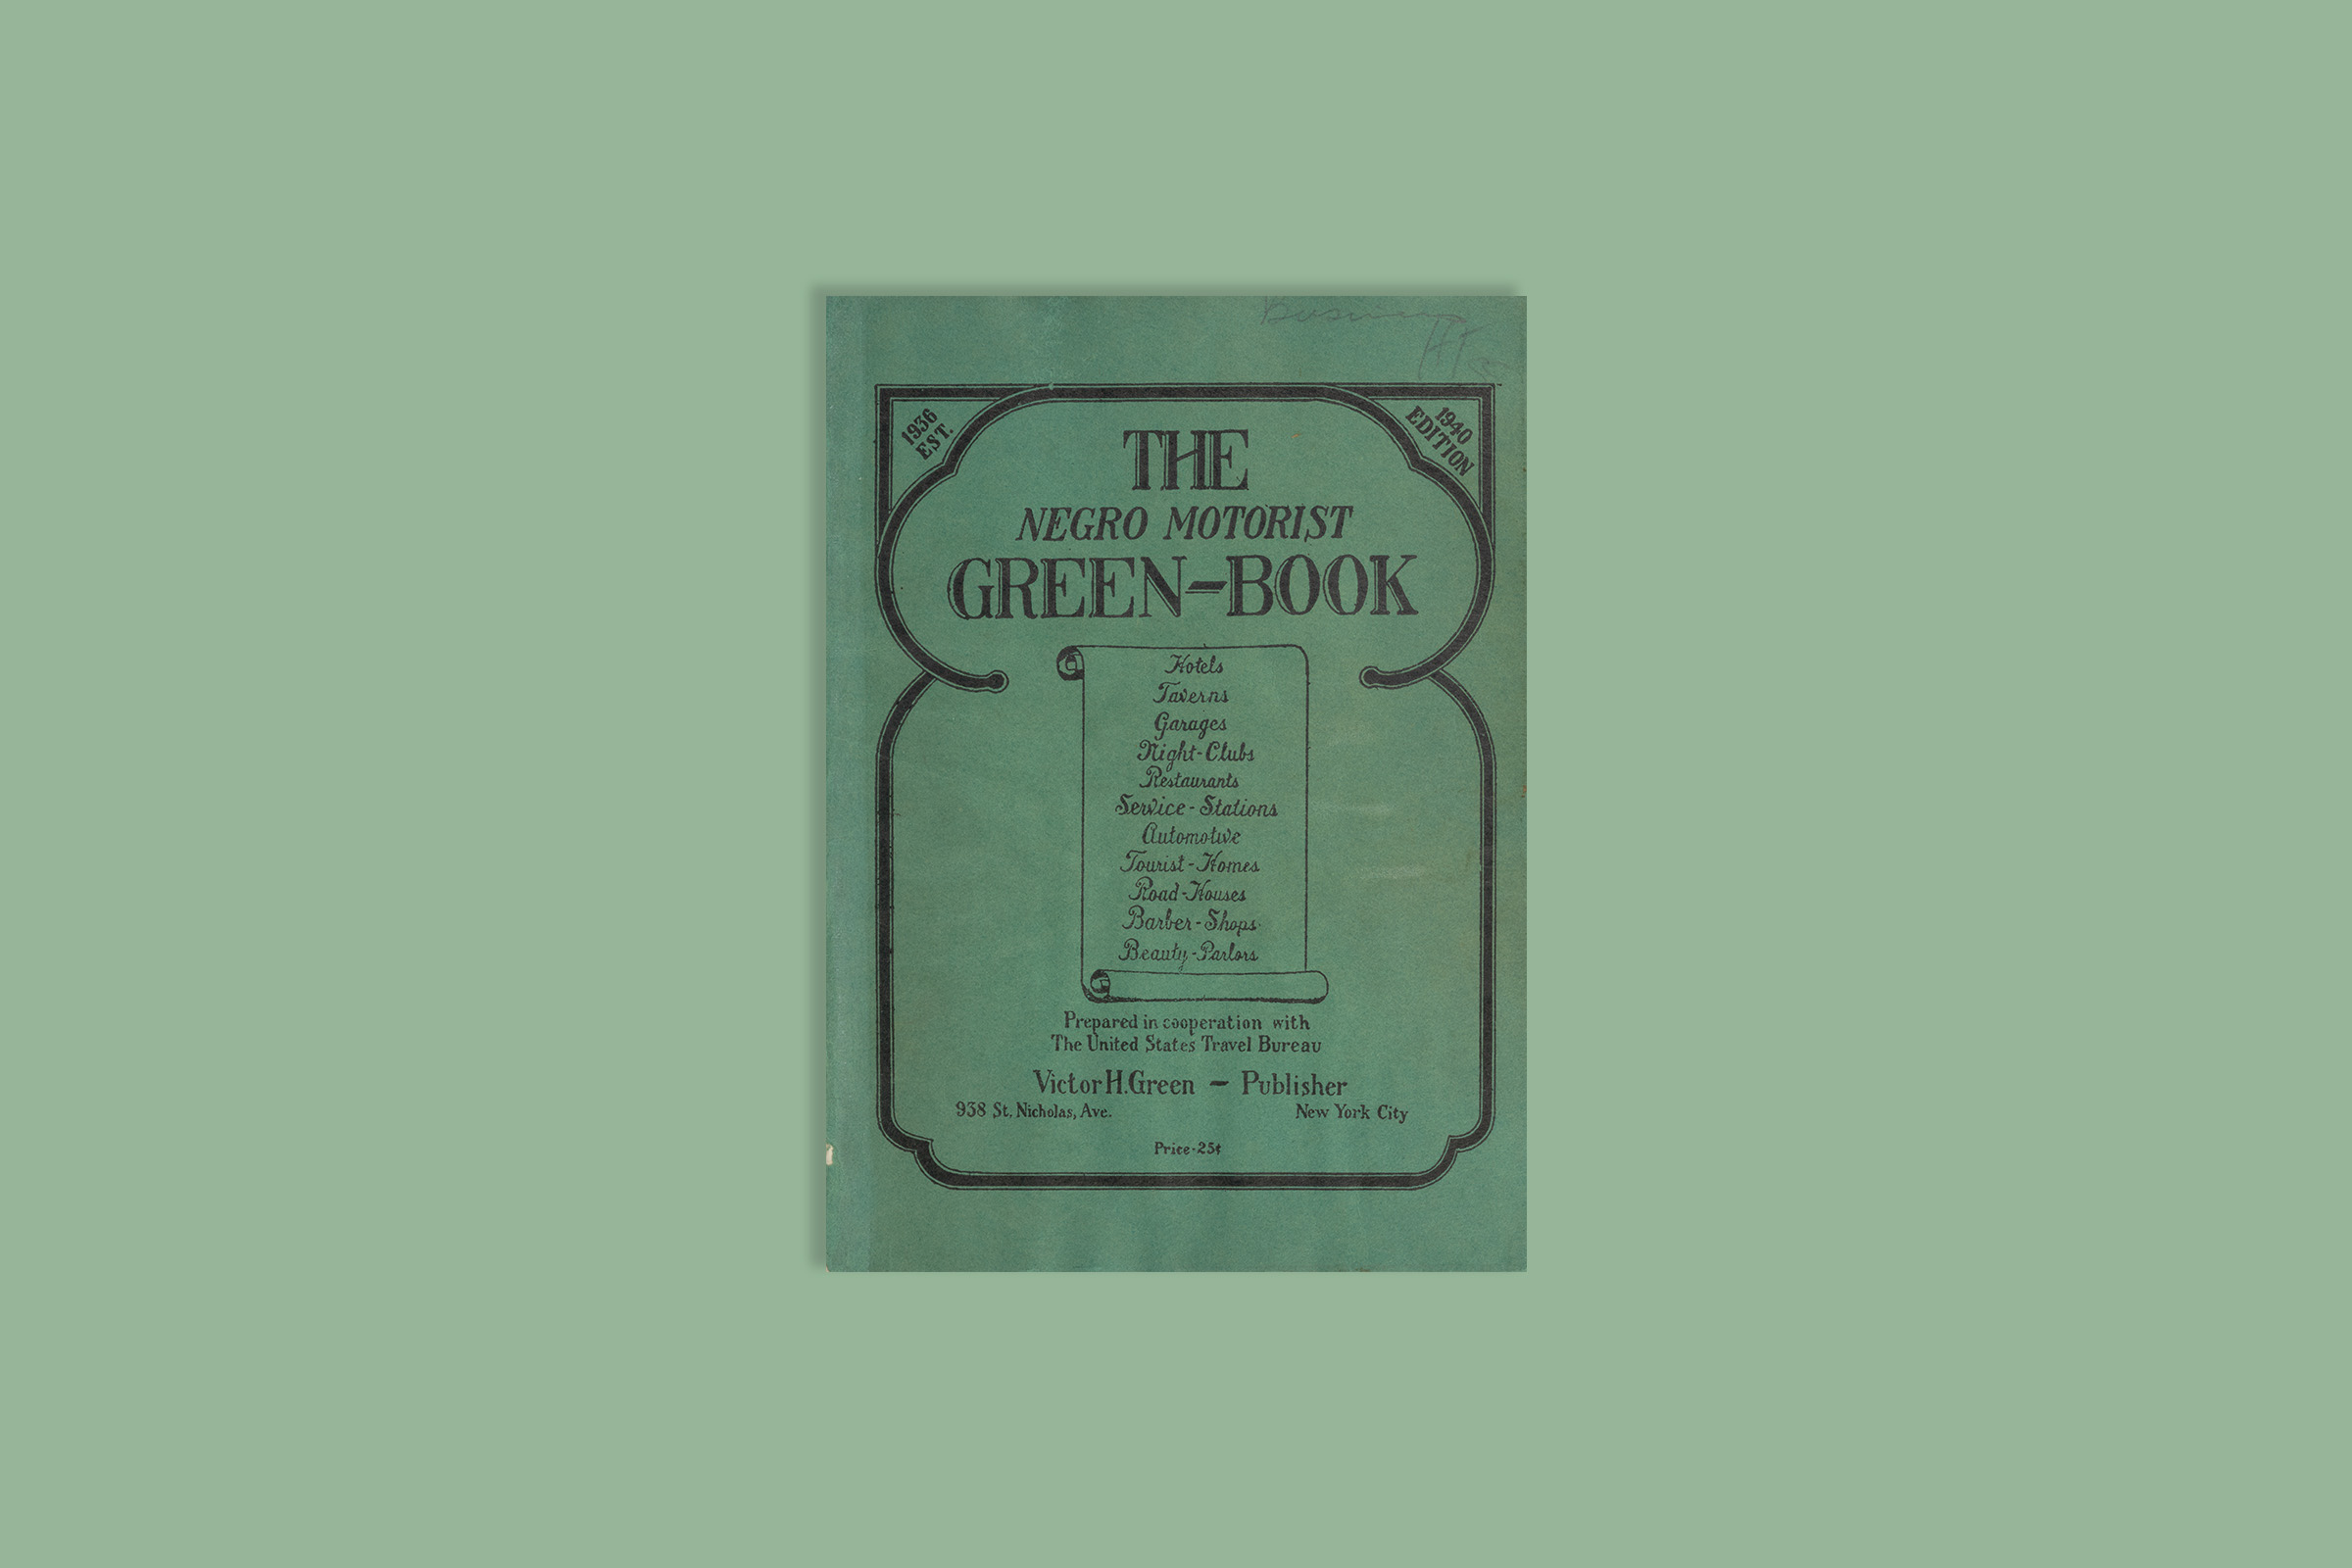 Cover of the book  The Negro Motorist Green-Book